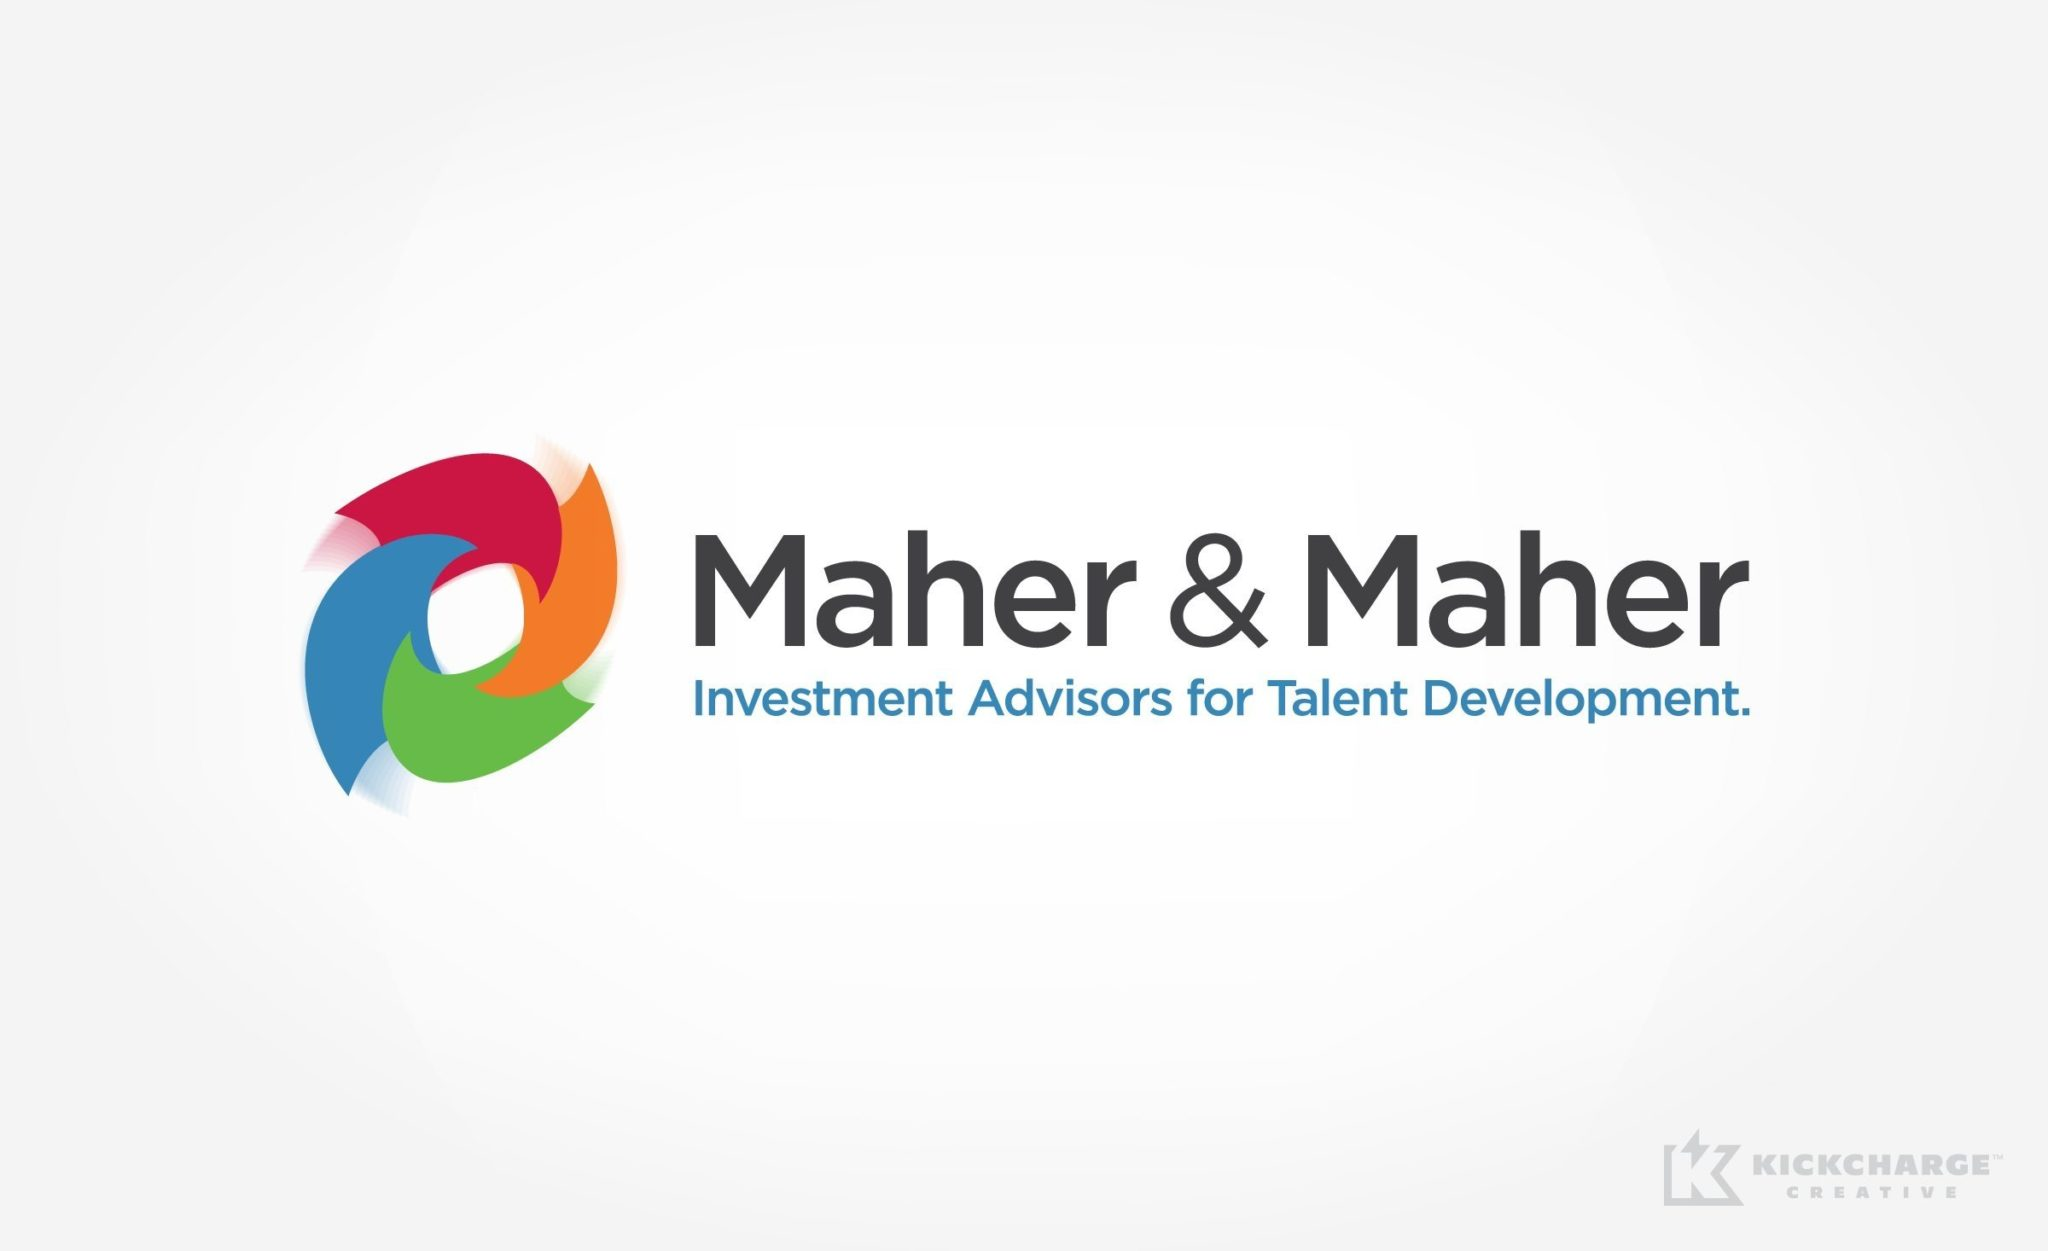 A corporate brand we developed for Maher & Maher, a NJ based business consulting firm.